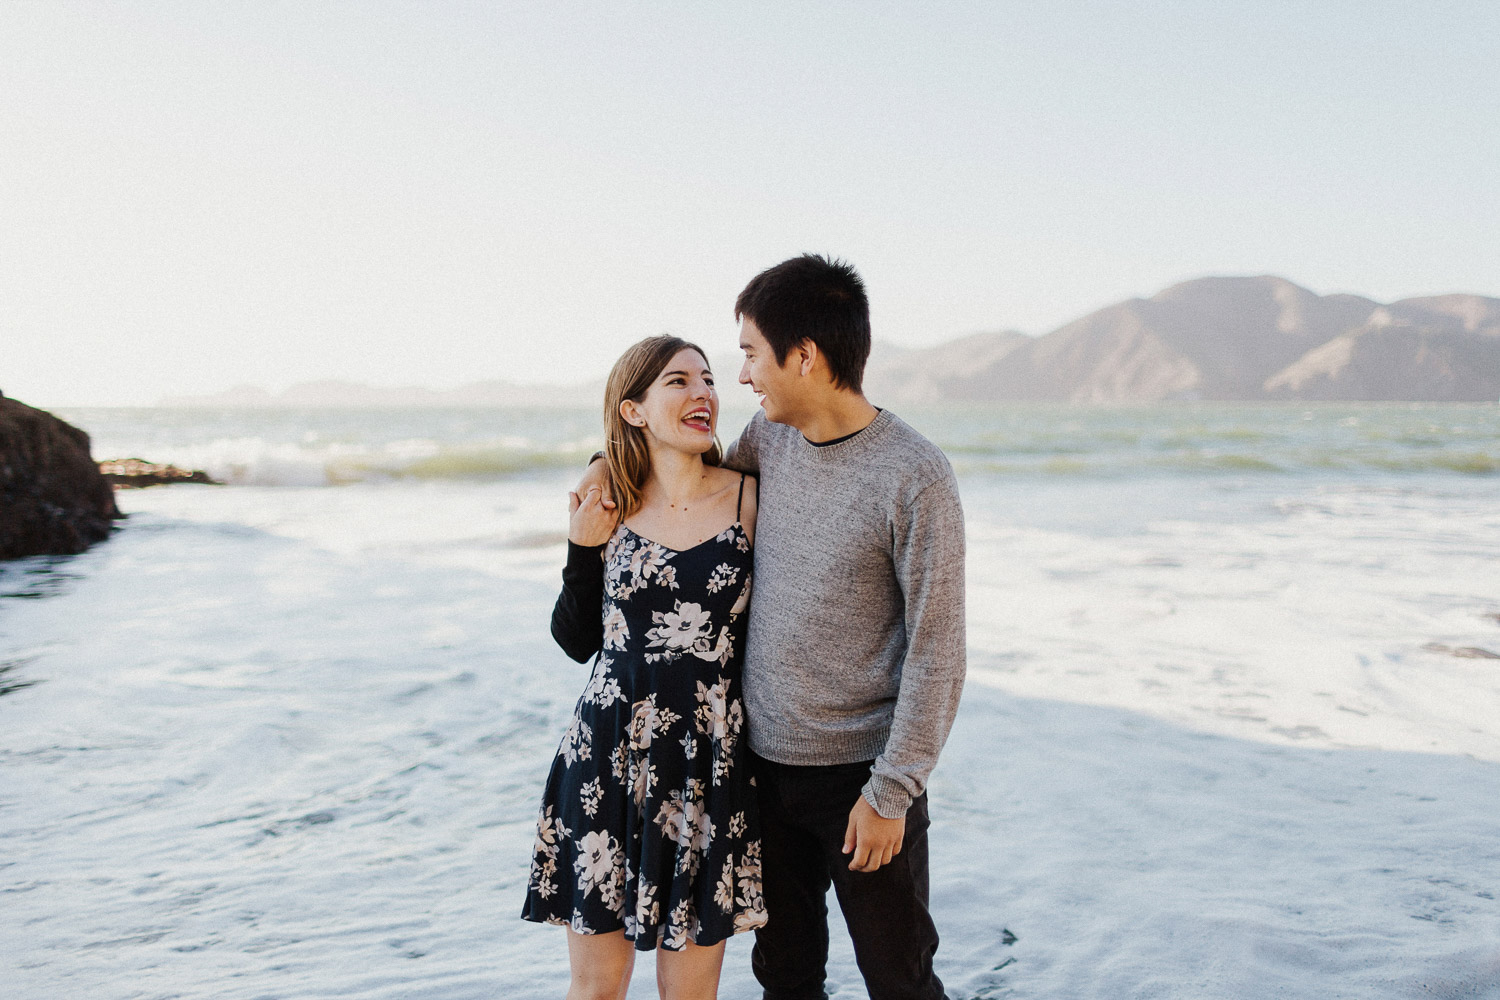 Image of couple smile to each other on beach